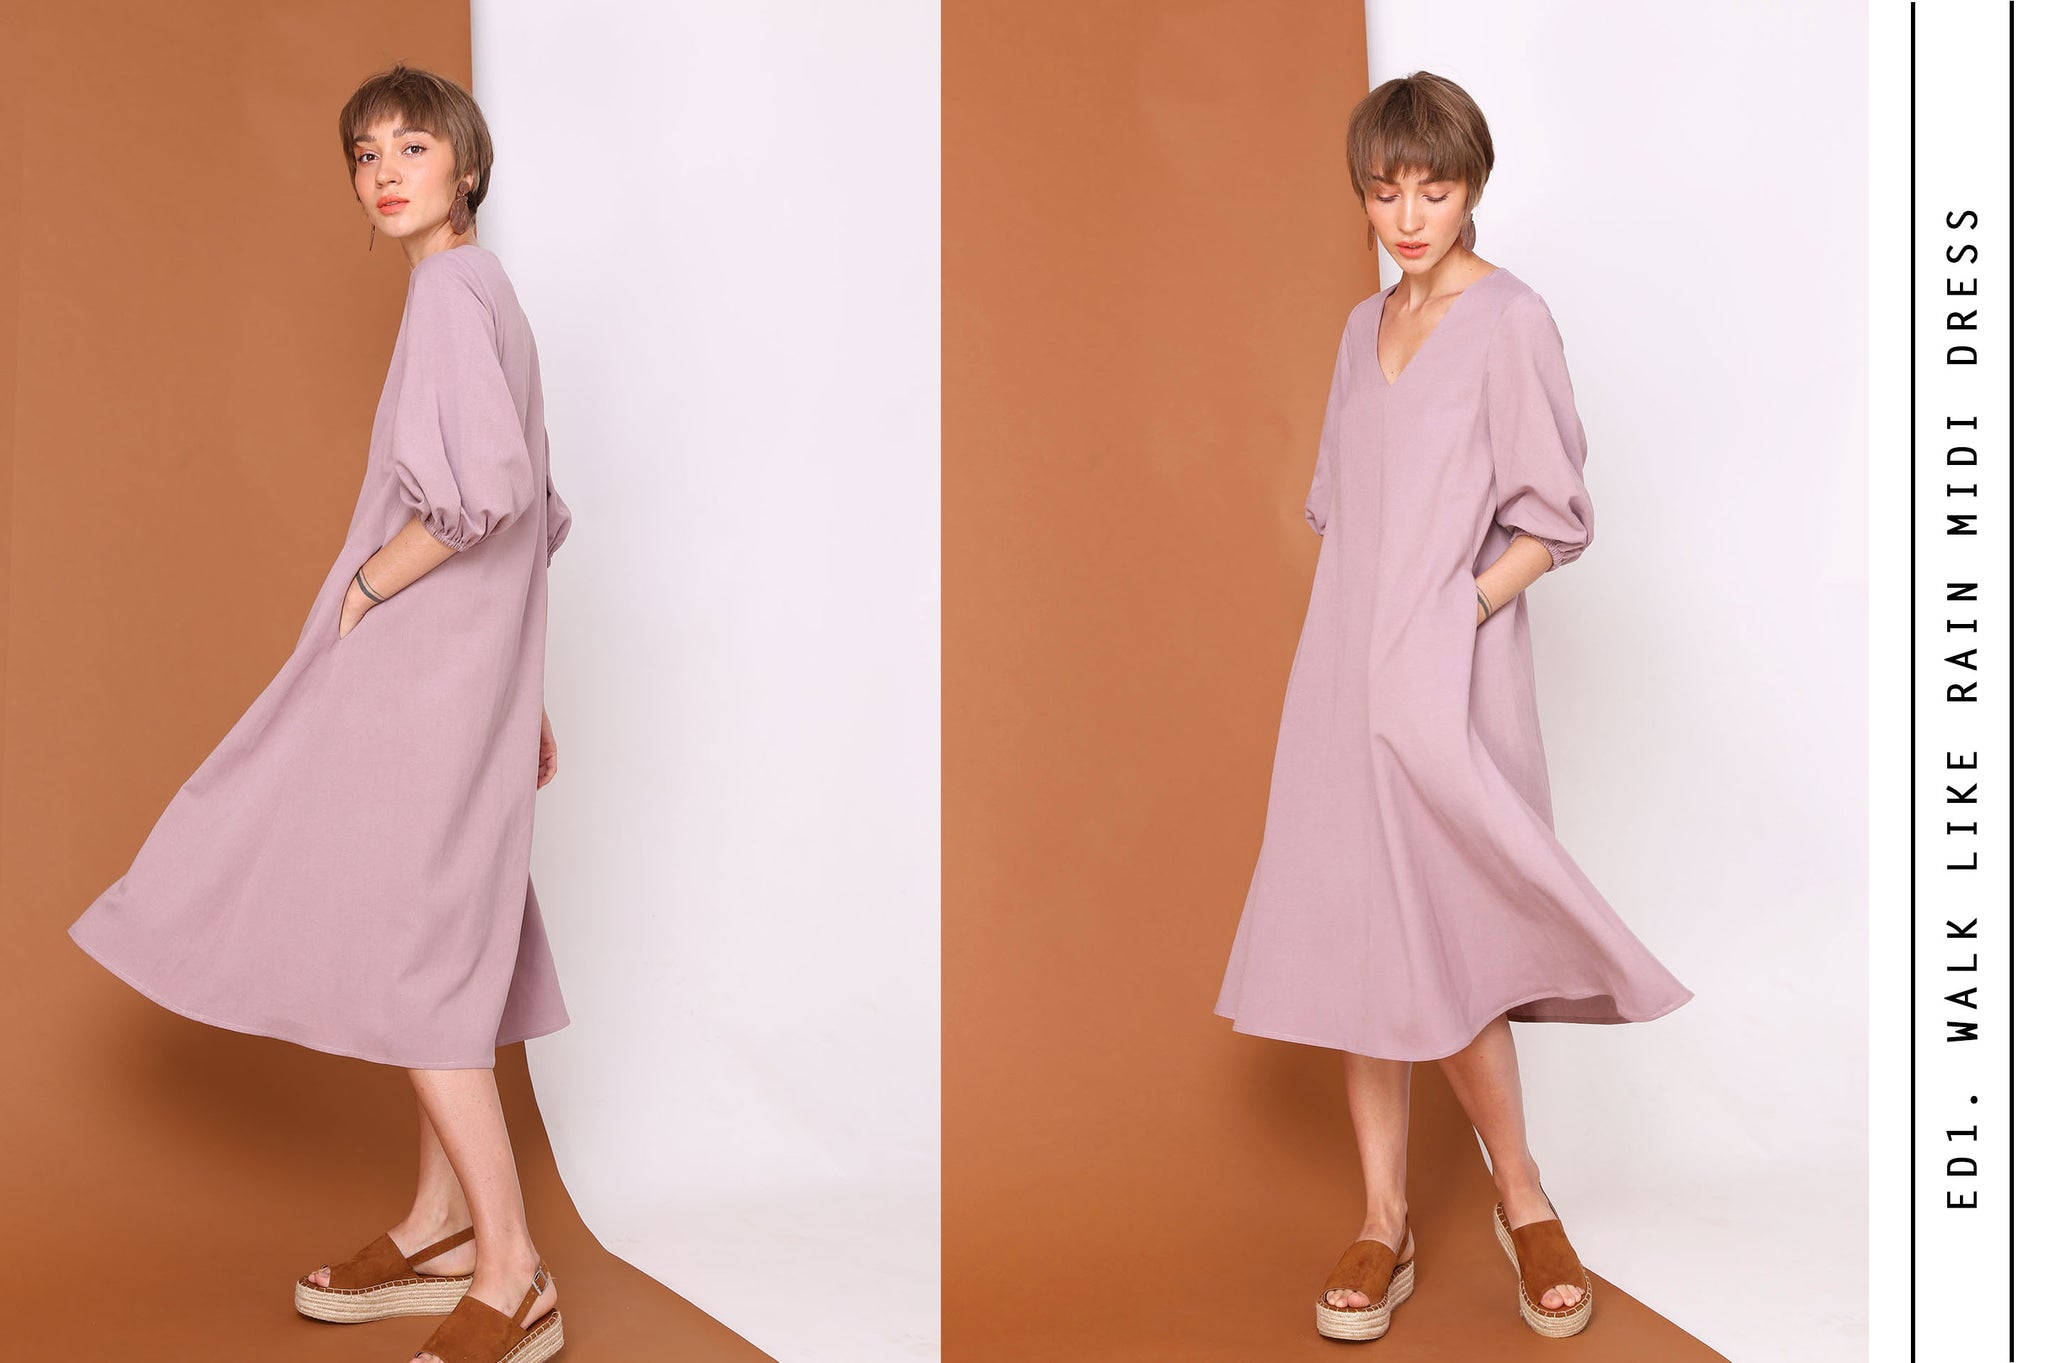 WALKS LIKE RAIN Linen Cotton Midi Dress In Lilac